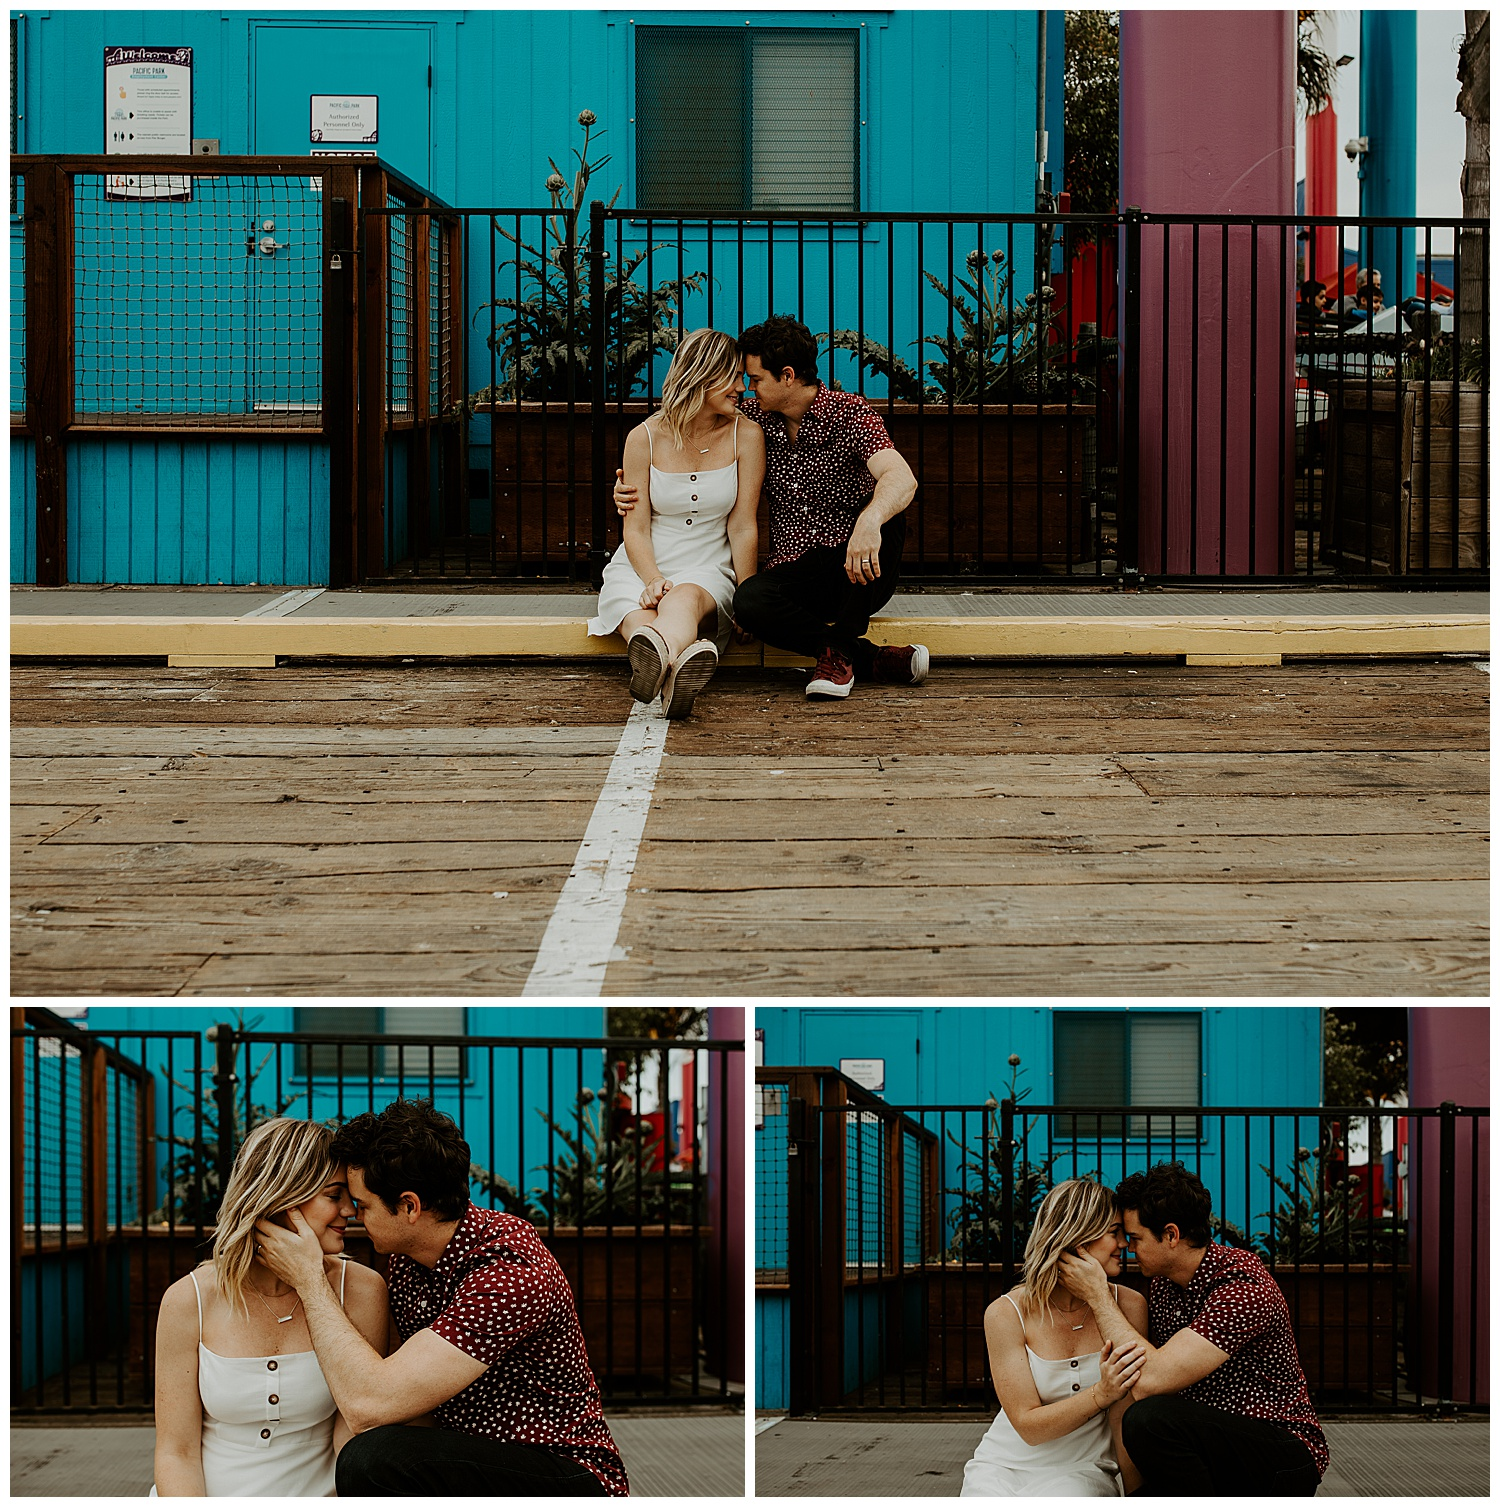 Laken-Mackenzie-Photography-Santa-Monica-Pier-Couples-Session-Kami-TJ-Malibu-Couples-Session05.jpg